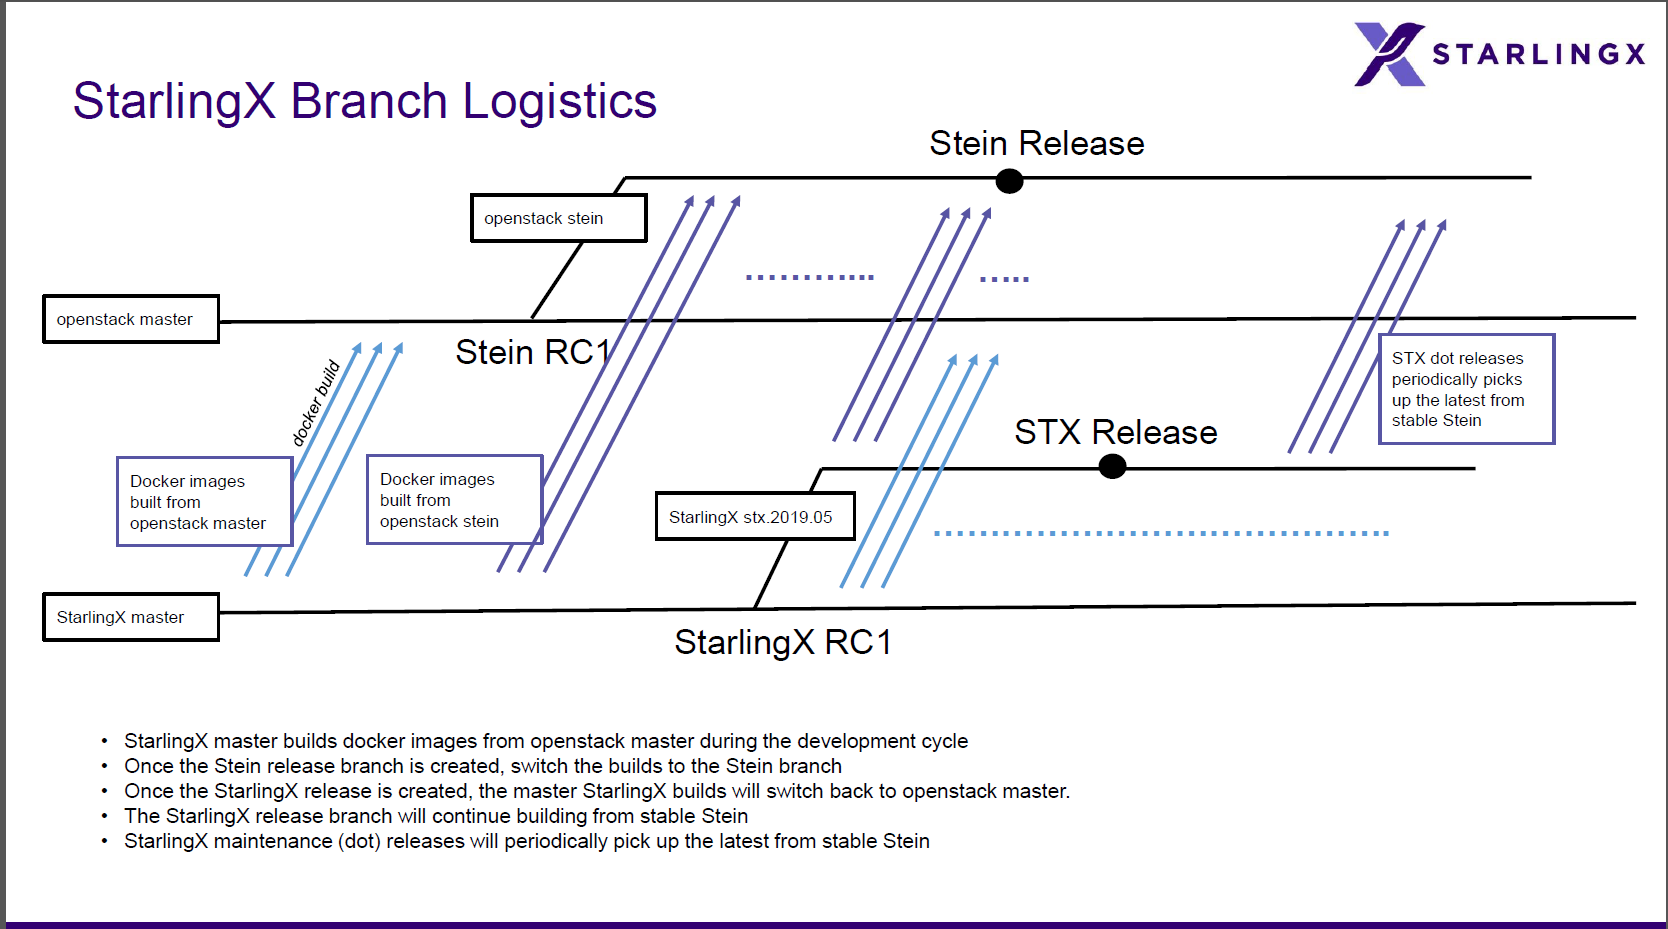 Stx-branch-logistics.png